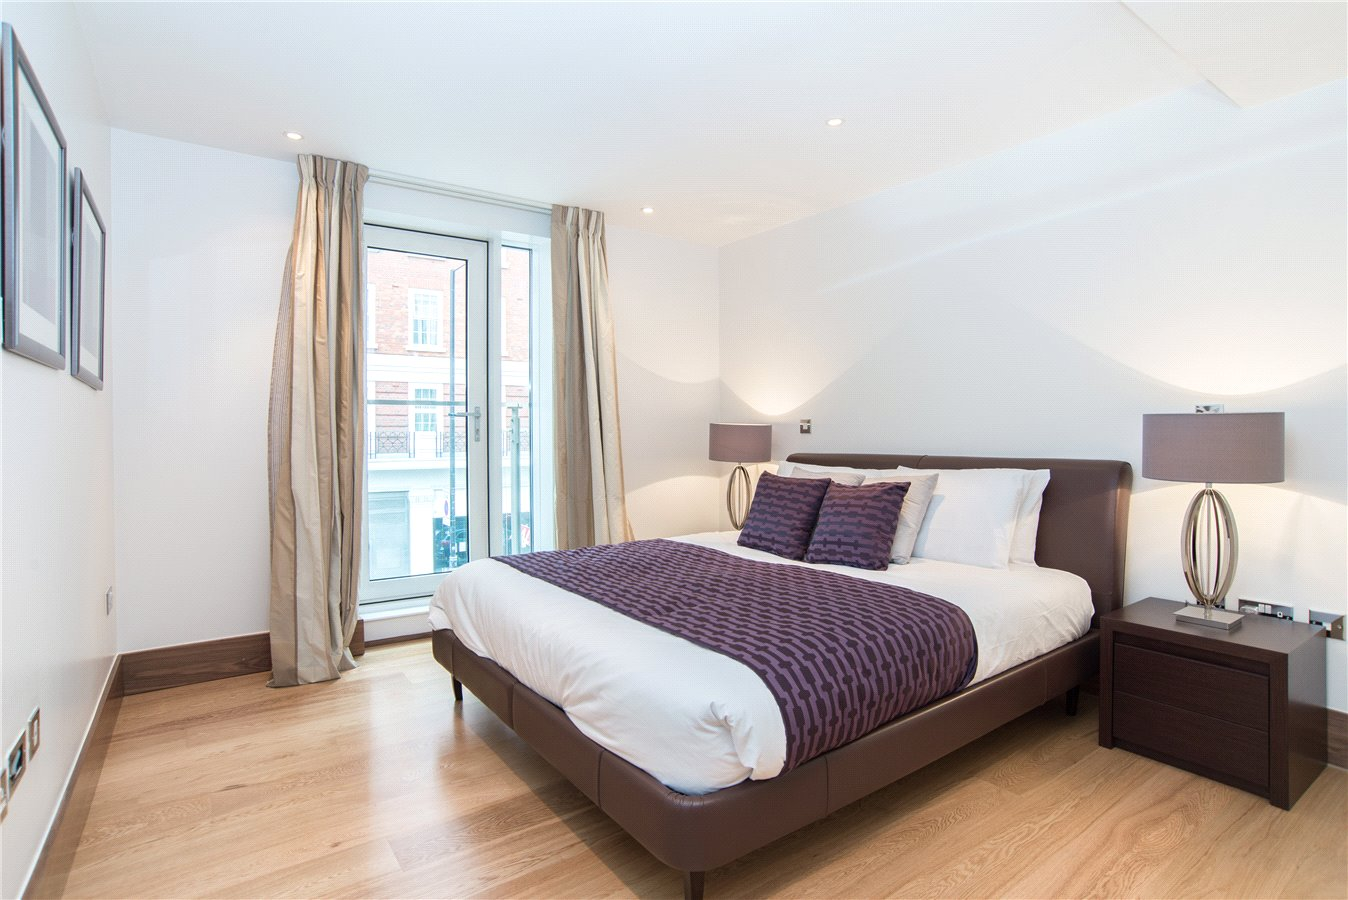 3 Bedroom Flat To Rent In Park View Residence Baker Street NW1 London